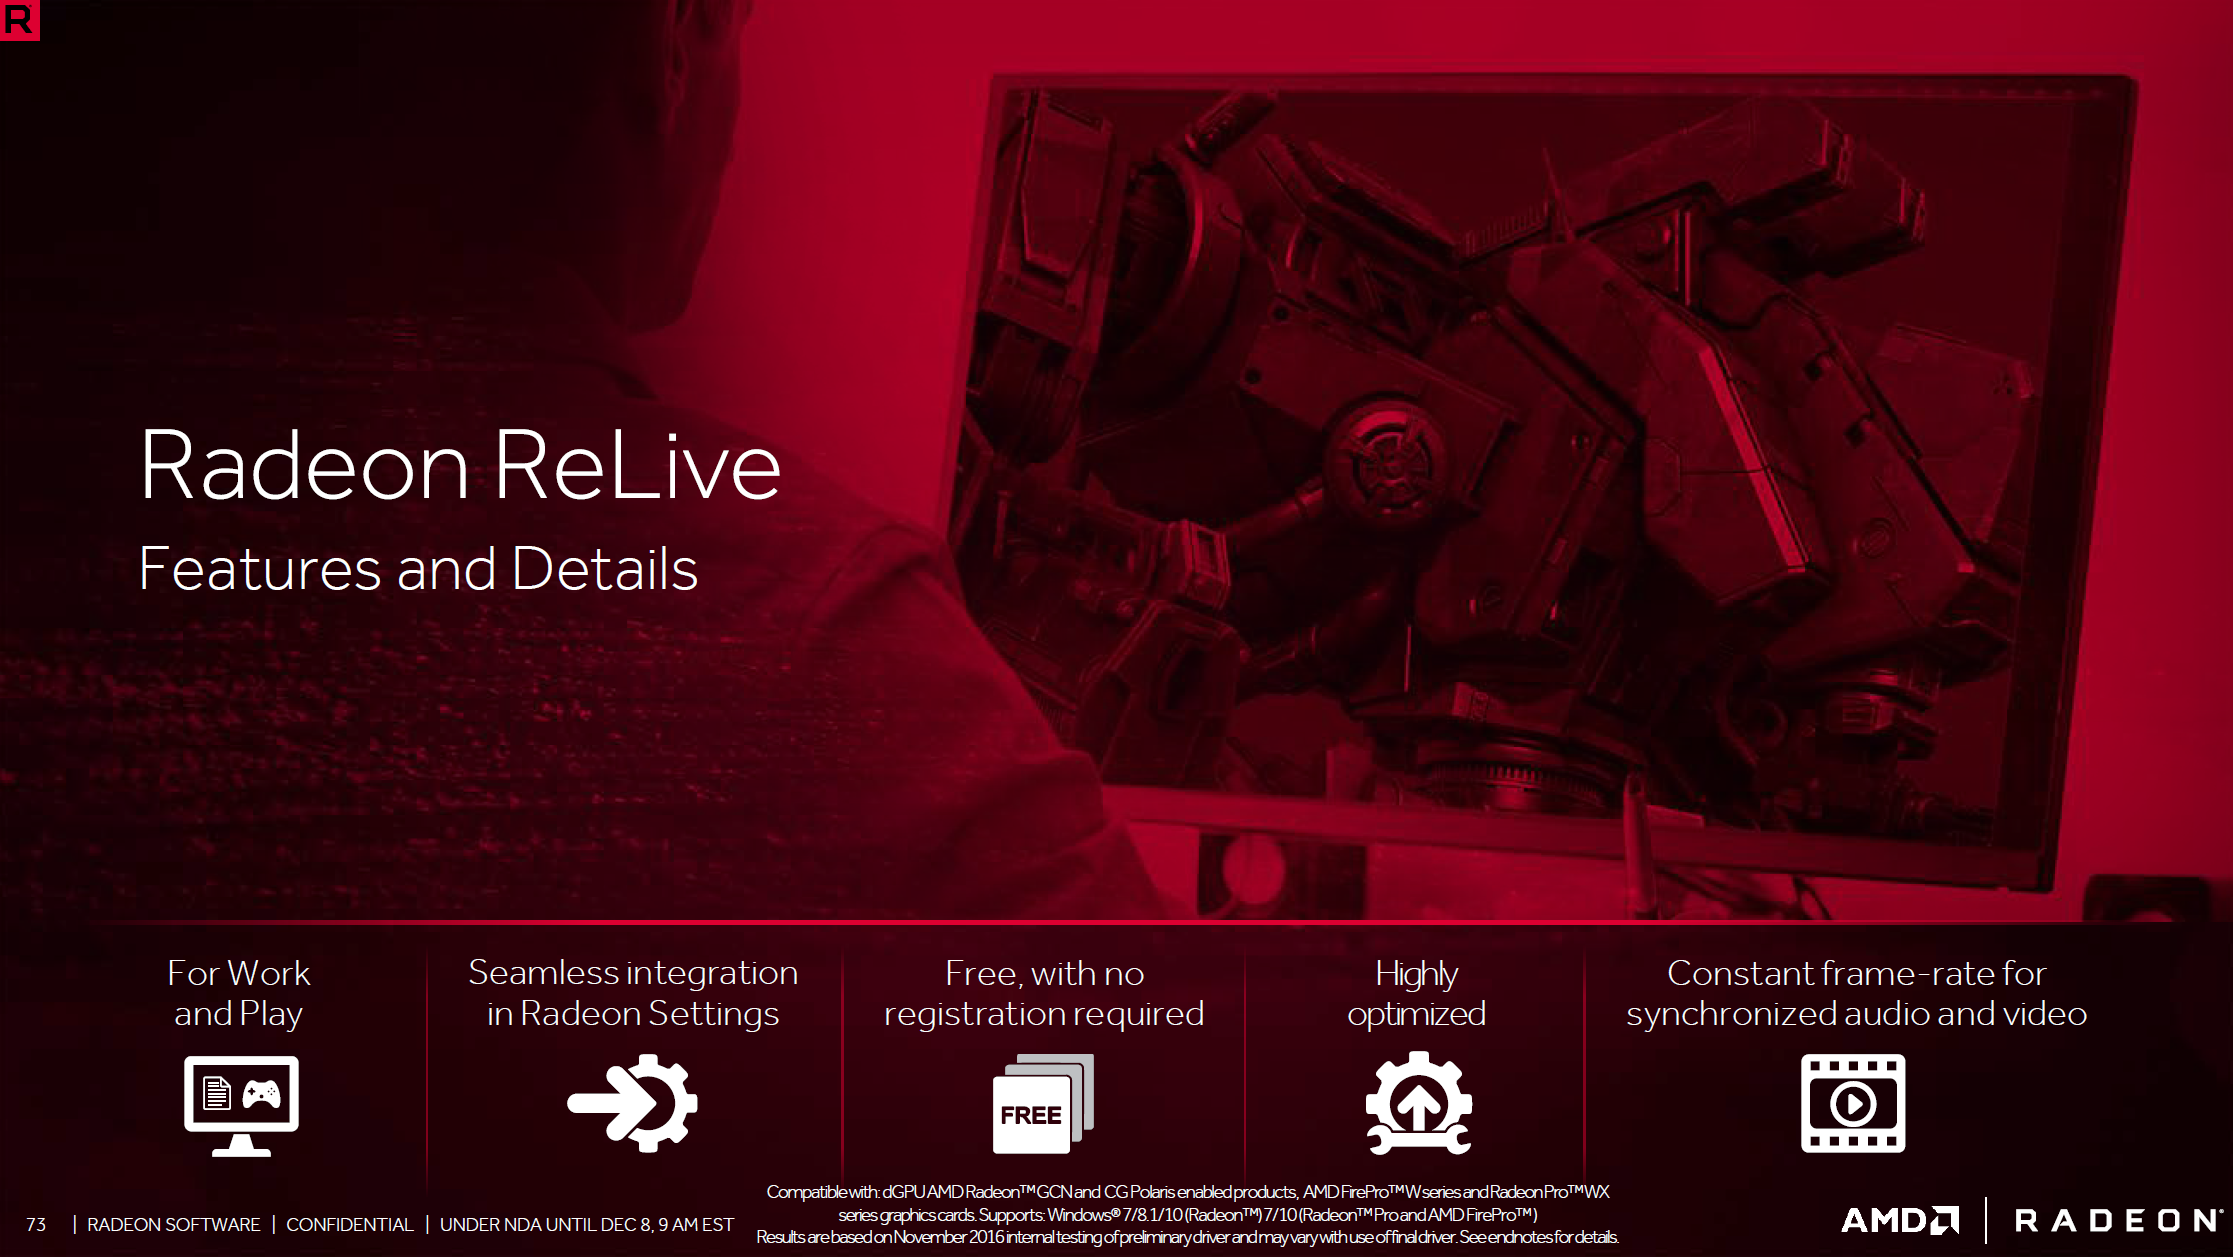 ReLive New Features (4): Game and Pro DVR for Streaming